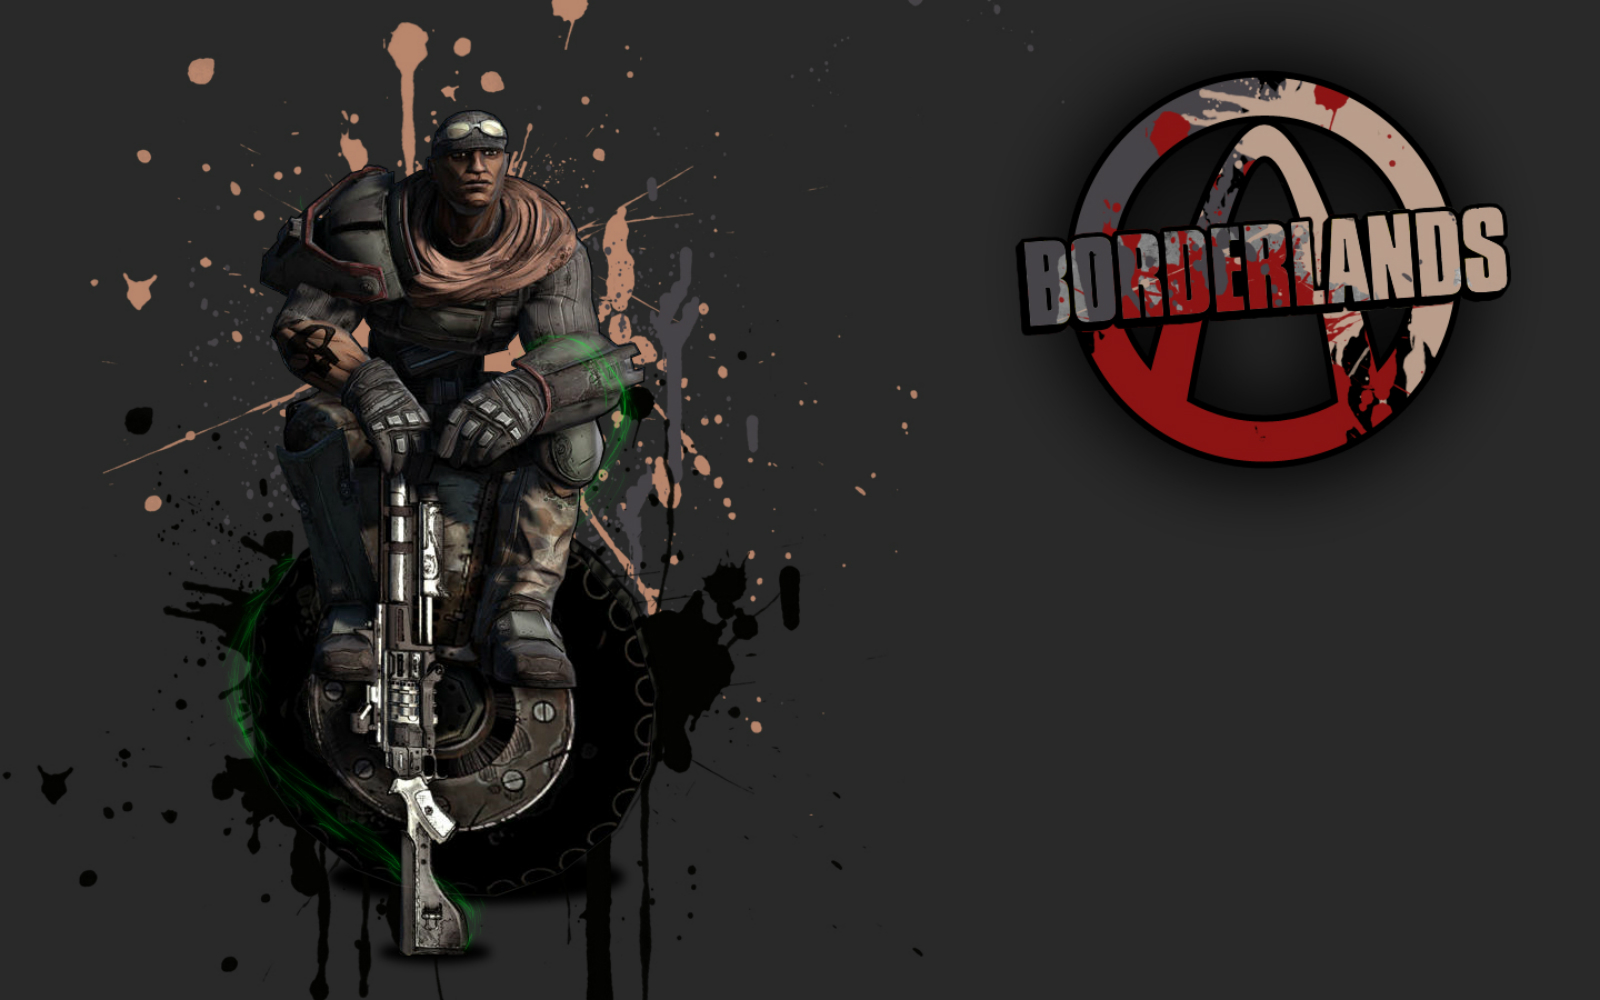 Borderlands HD Game Wallpapers | Desktop Wallpapers Borderlands